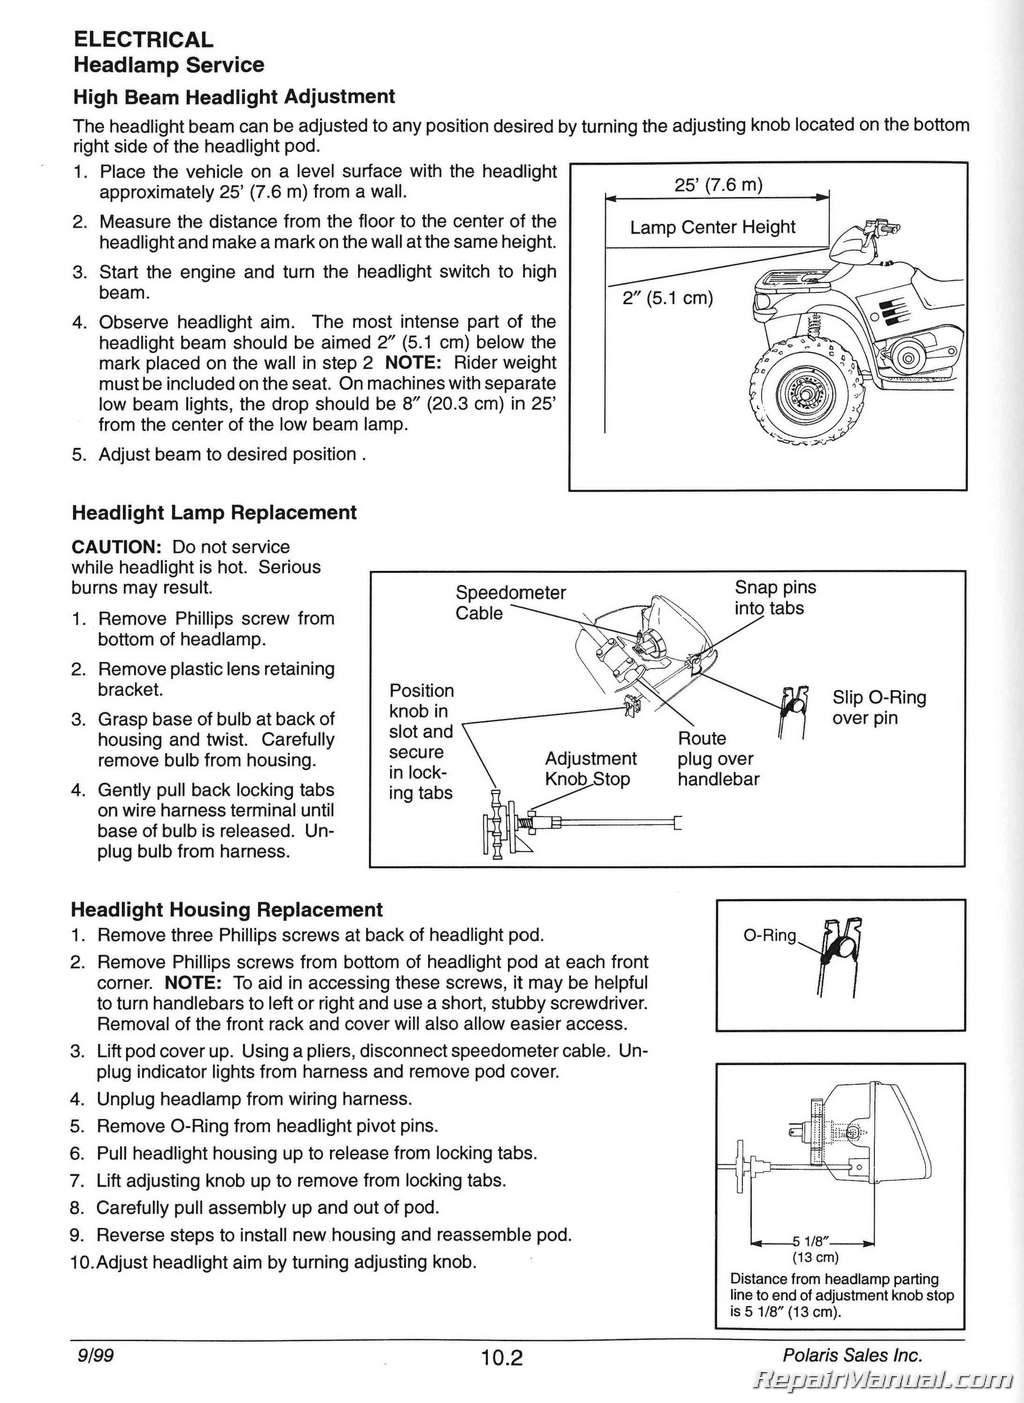 2004 arctic cat 500 atv wiring diagrams 2000 polaris 500 scrambler wiring diagrams 1996-2000 polaris sportsman 335 500 atv service manual by ... #15